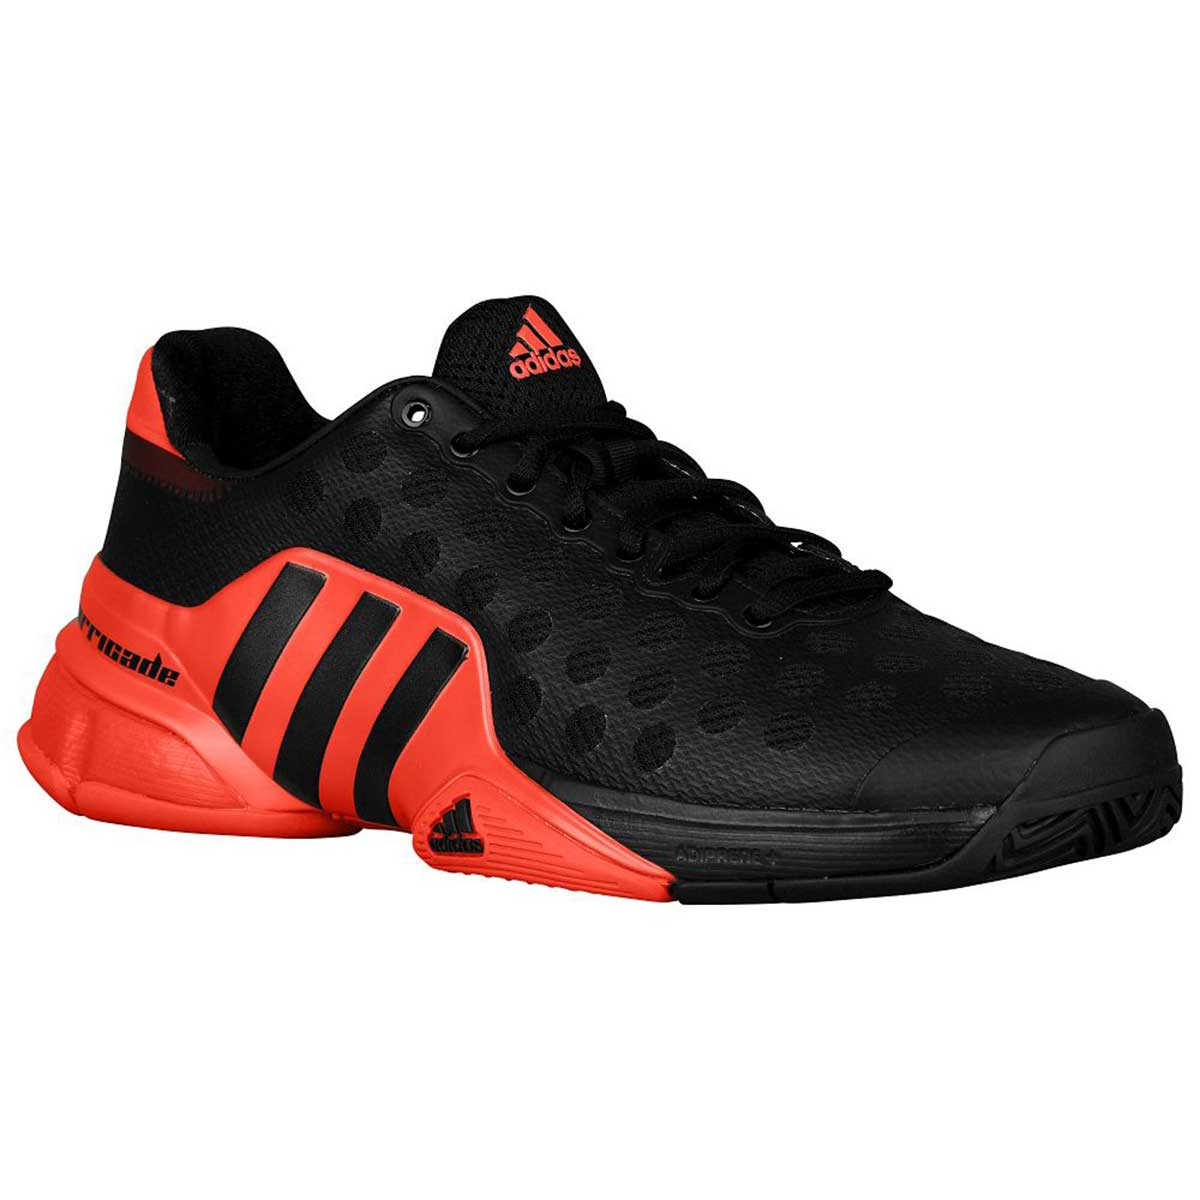 buy adidas tennis shoes online in india